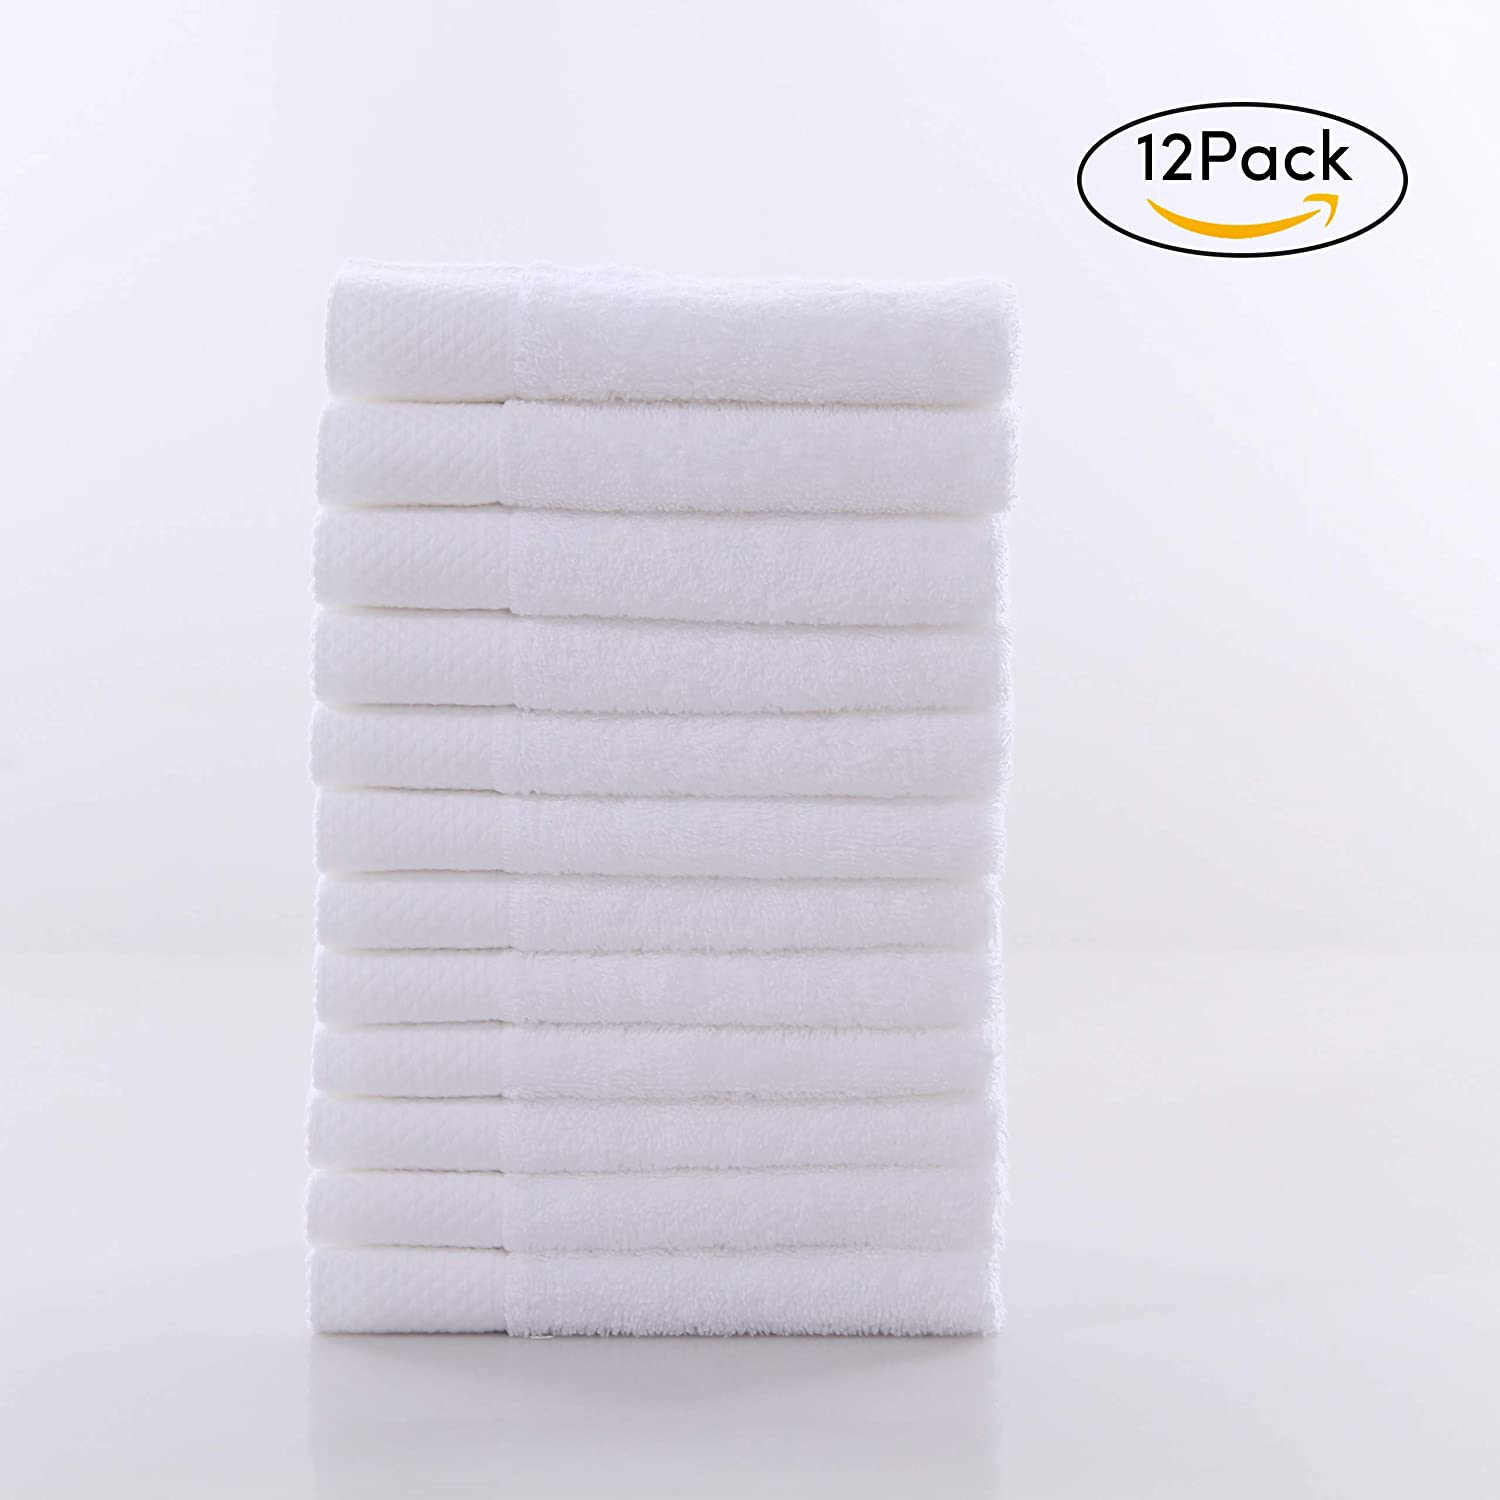 VANWEIDI Luxury Hotel Cotton Washcloth Towels - Face Cloths 12 Pack - 13.8 × 13.8- Super Absorbent & Extra Soft - for Use in Bathroom, Kitchen, Nursery and Cleaning - Machine Washable, White Lovefire International